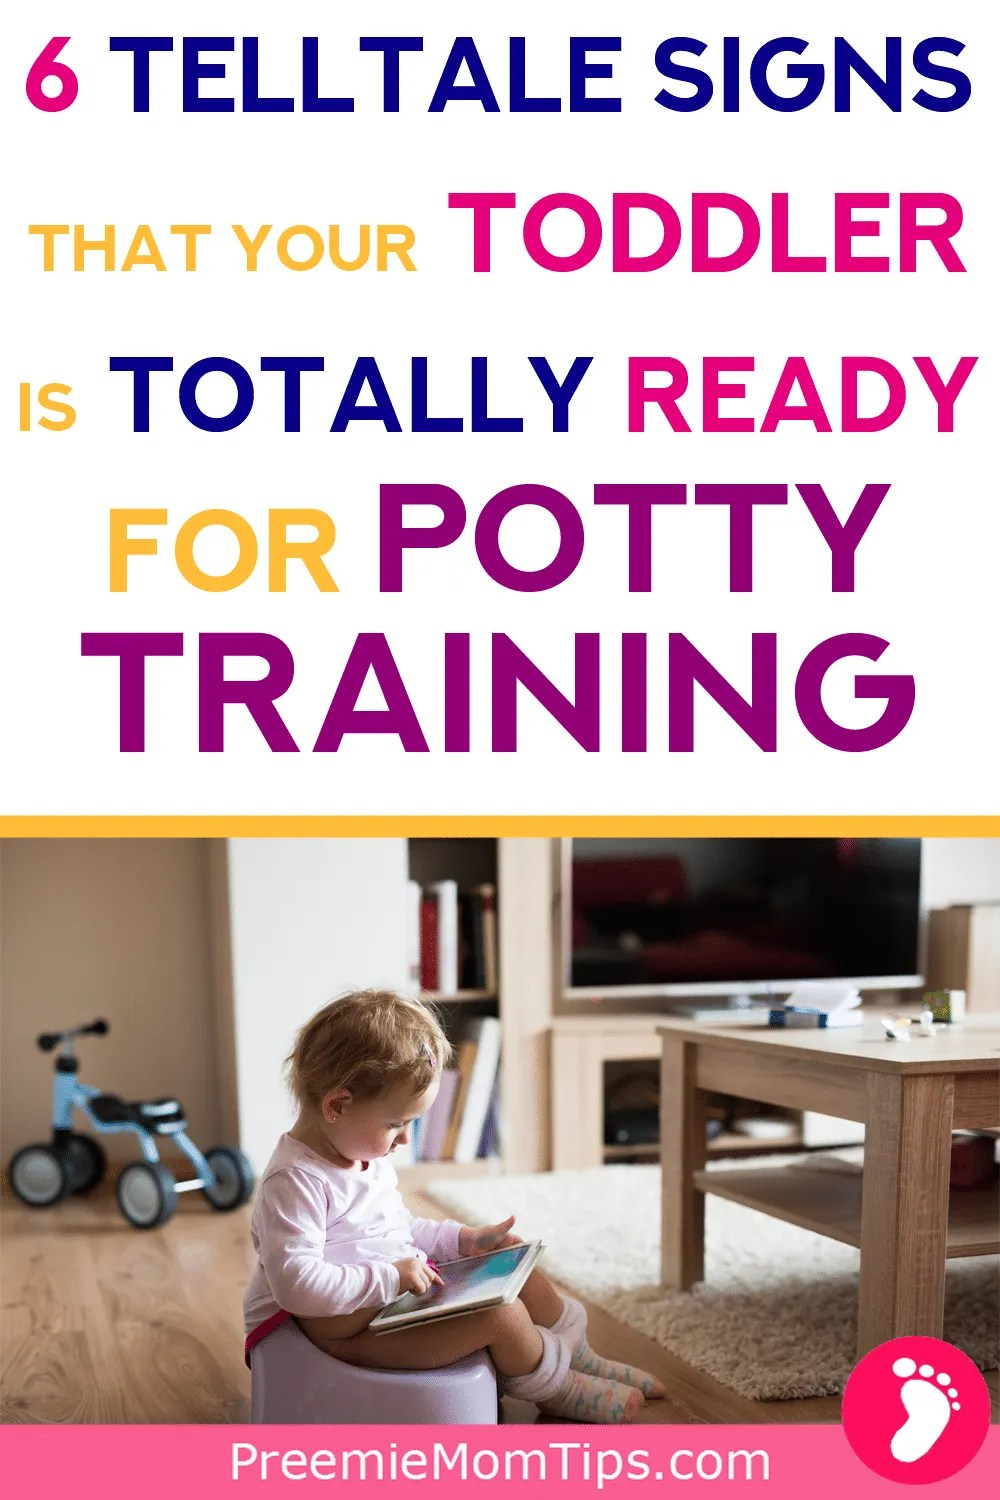 Is your toddler ready to start potty training? Achieve potty training succes with this comprehensive guide for new moms!